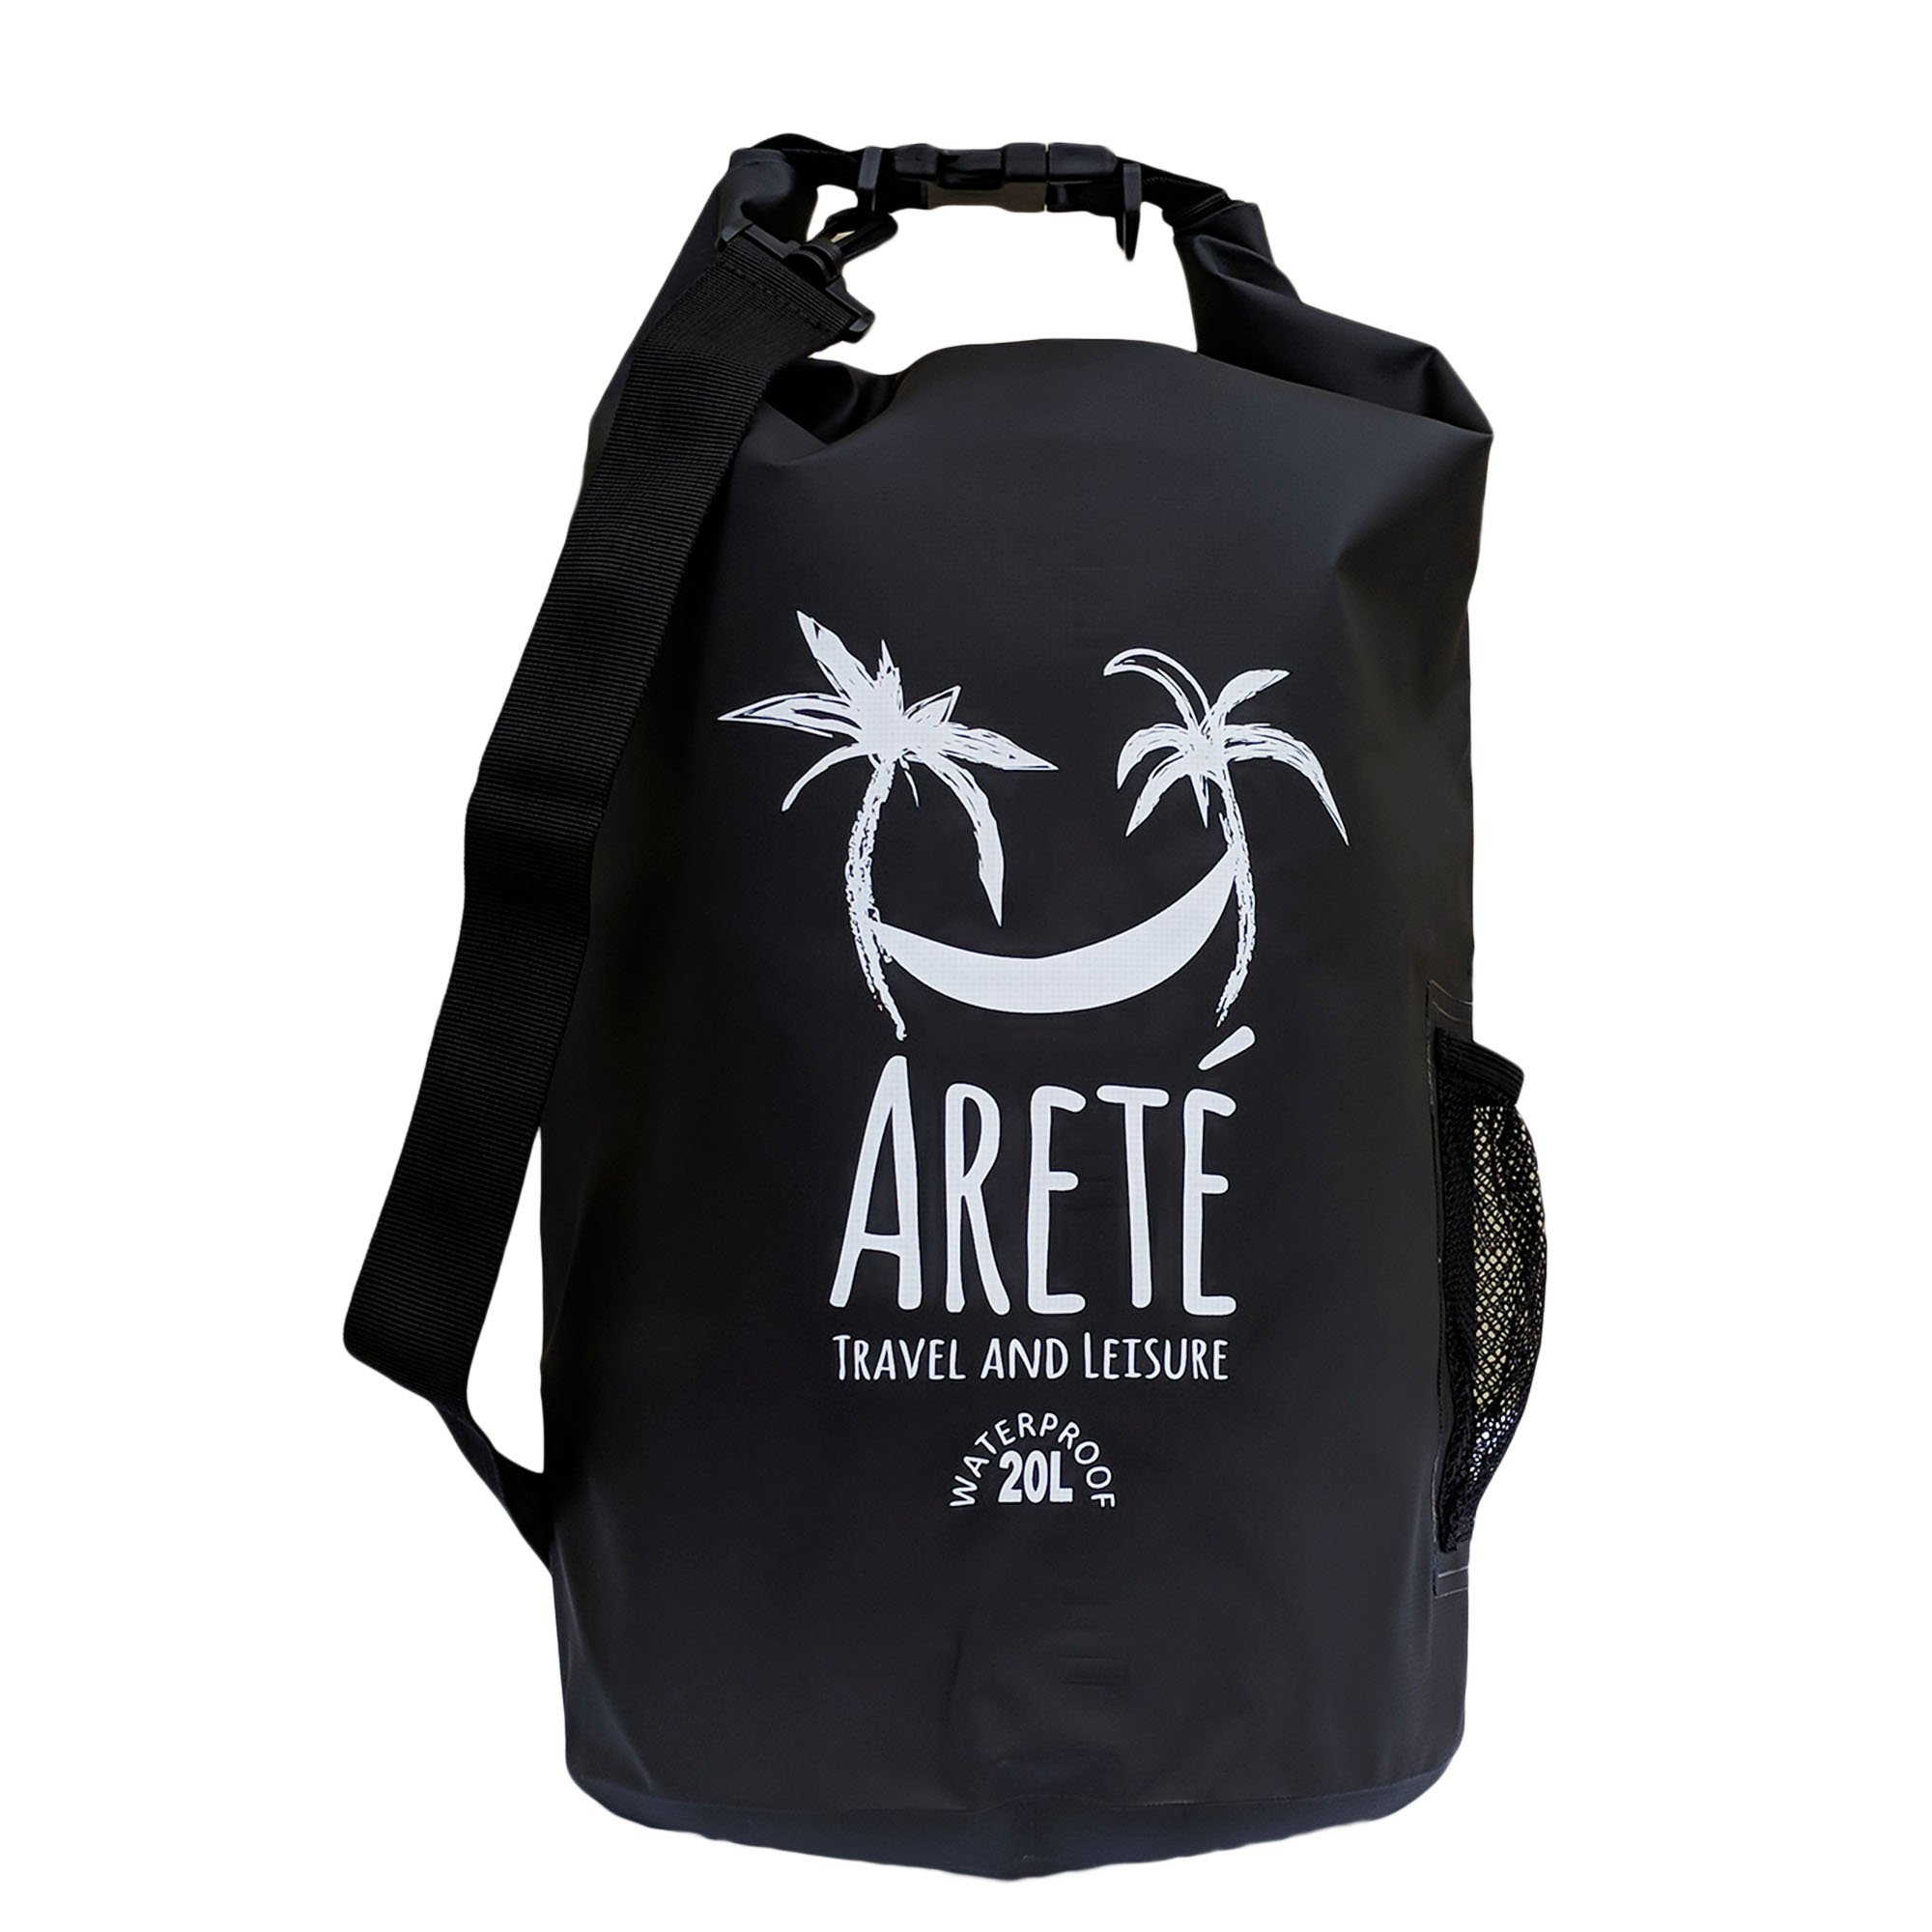 Arete Travel and Leisure Waterproof Dry Bag (20L) - Guaranteed to Keep Valuables Safe and Dry with Stiffening Blade/Edge Sealing Technology - Includes Water Bottle/Beverage Pouch by Areté Travel and Leisure